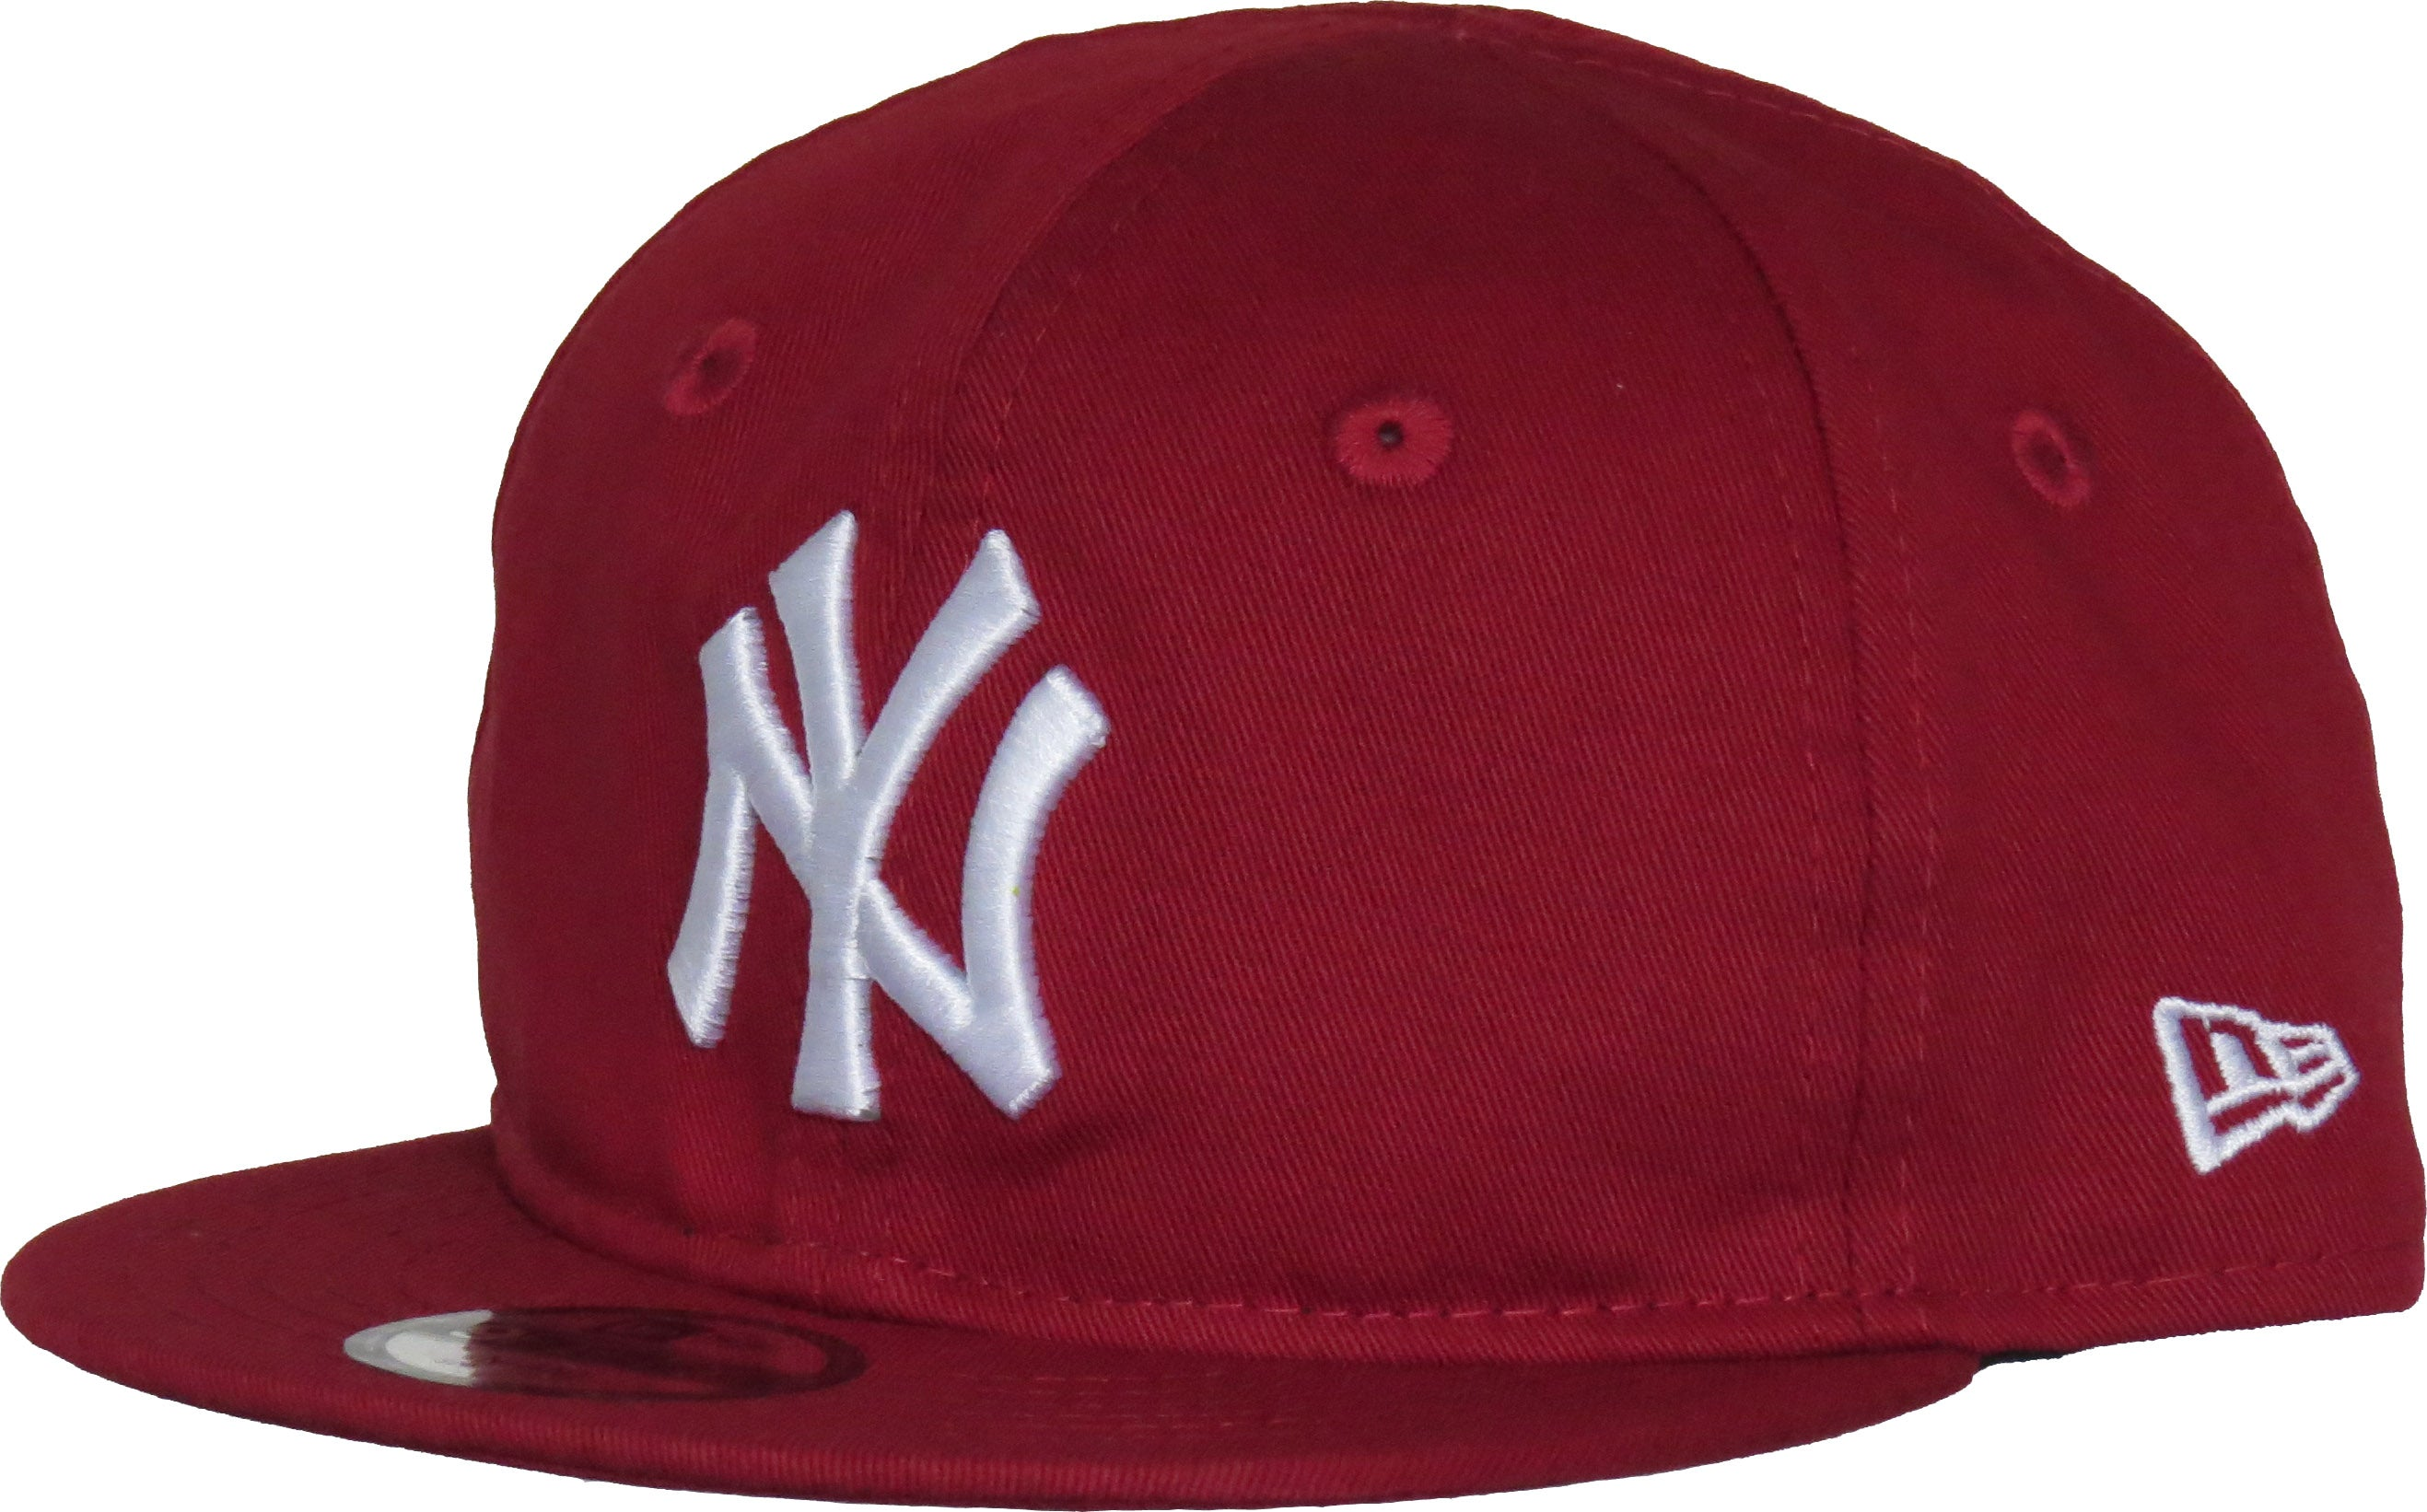 1fb5bcc7f20 NY Yankees New Era 950 Infants Red Snapback Cap (0 - 2 years) – lovemycap